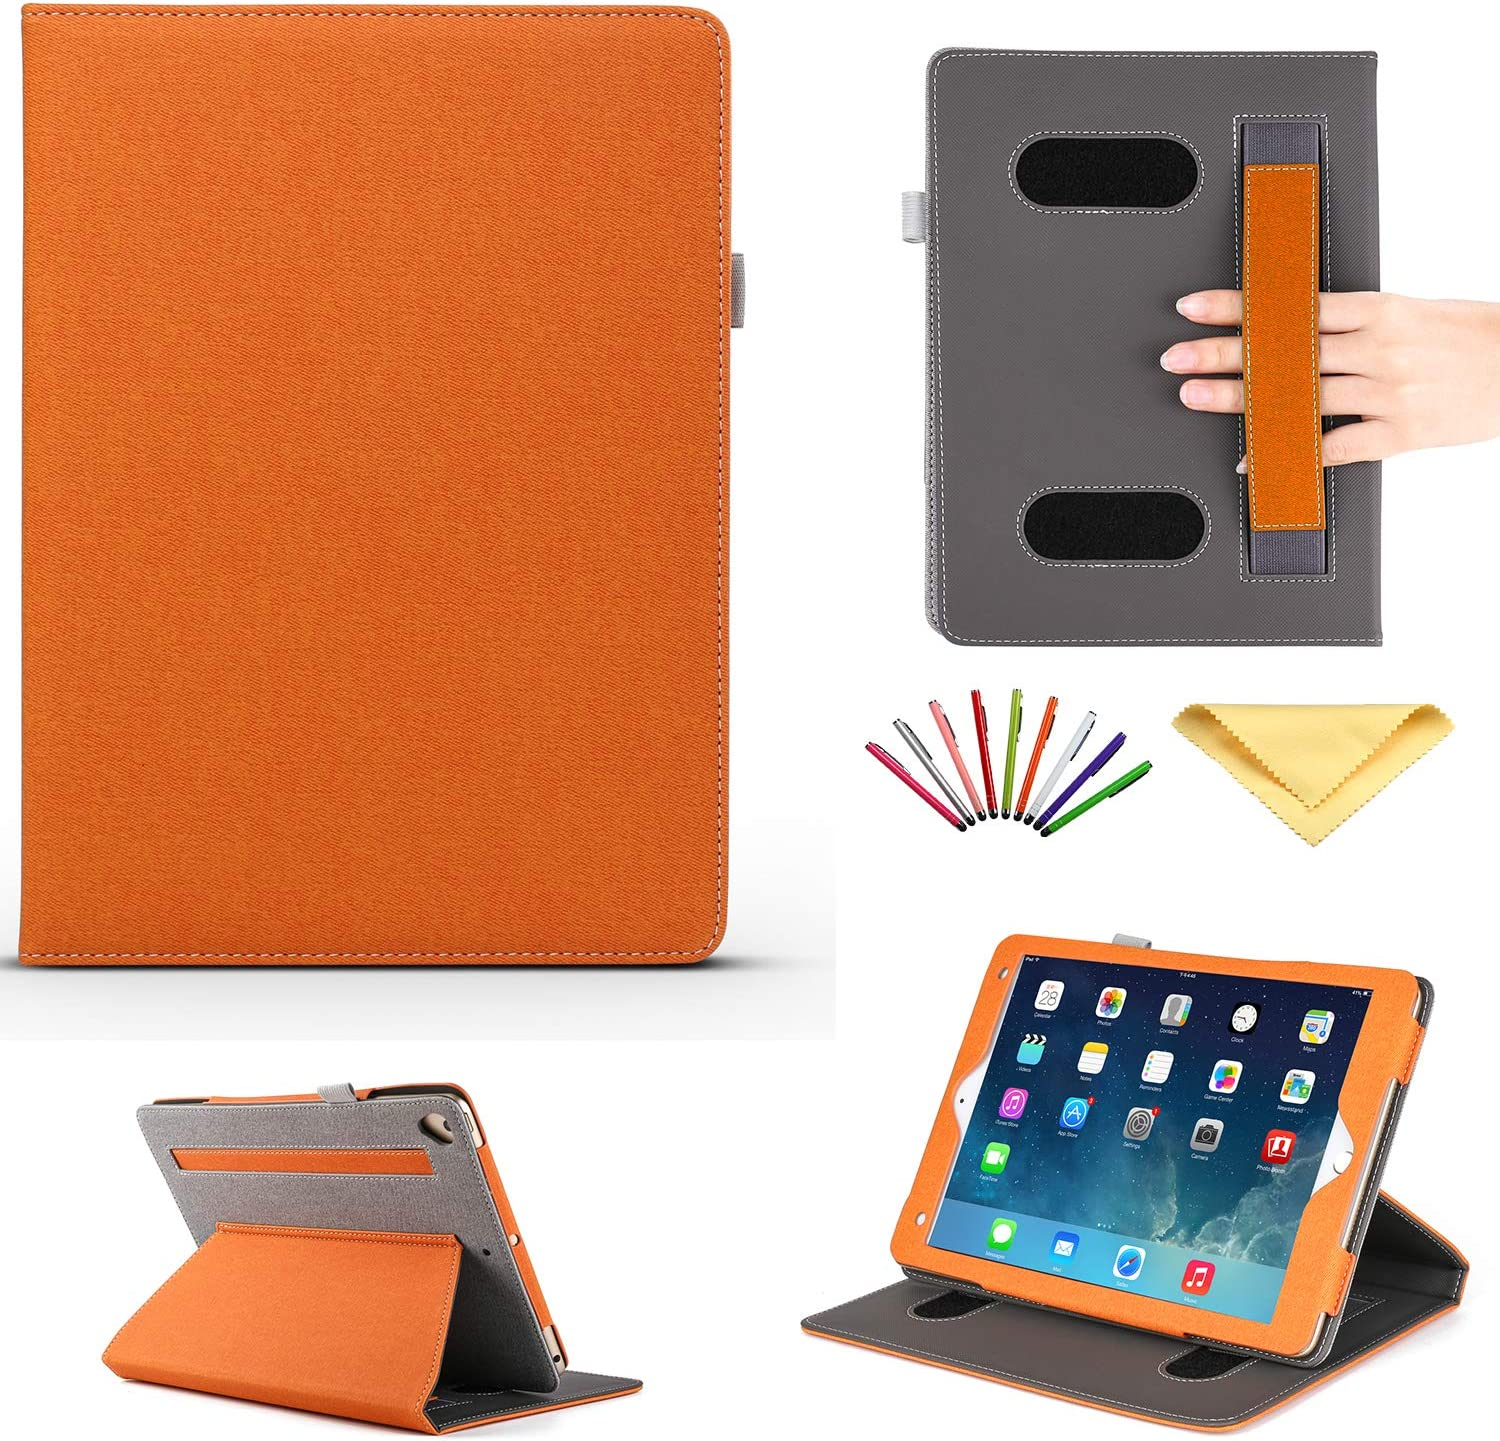 iPad 9.7 Inch Case 2018 2017 (iPad 5th/6th Gen), iPad Pro 9.7 2016/iPad Air 1/Air 2 Cover, Uliking Smart Stand PU Leather Auto Sleep/Wake Cover with Pencil Holder Card Pocket [Hand Strap/Grip], Orange